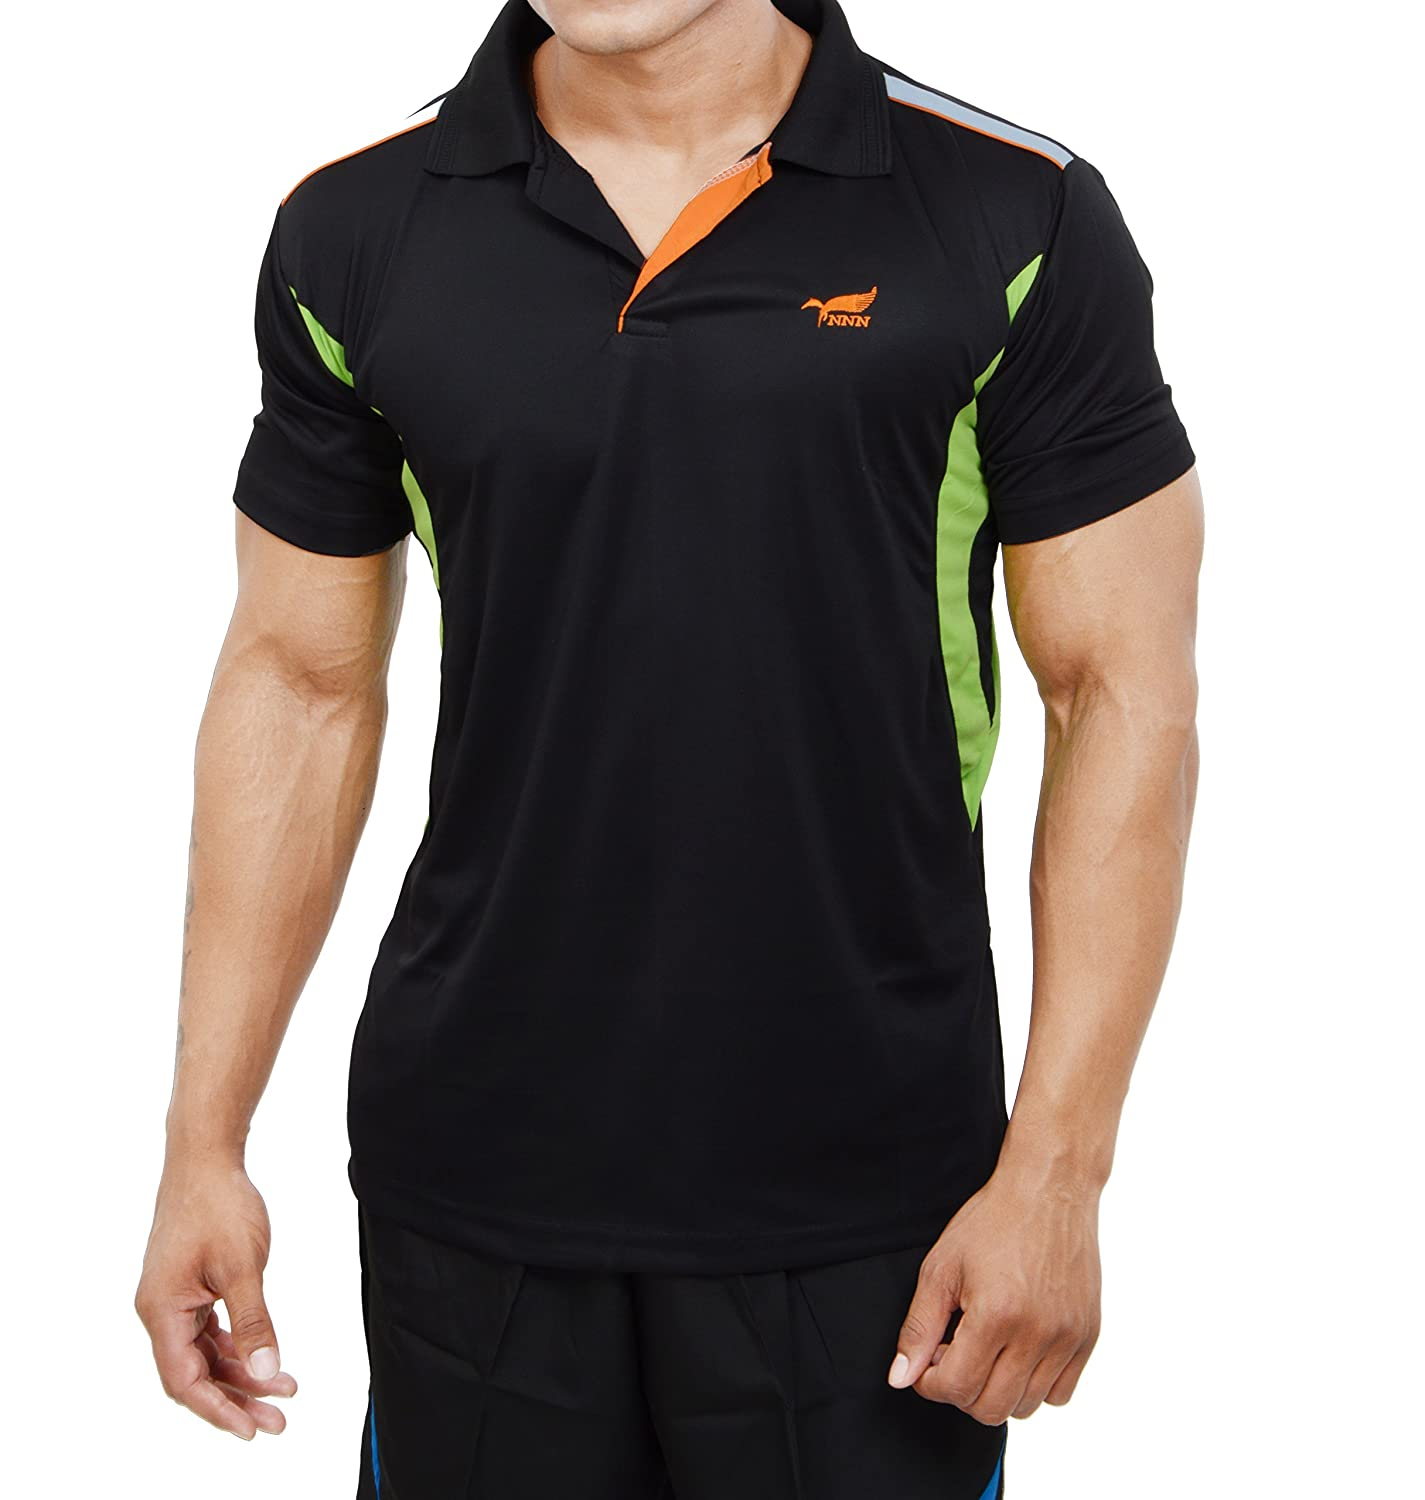 0c996ab2 NNN Men's Polyester Dry-fit Sports T-Shirt: Amazon.in: Clothing &  Accessories